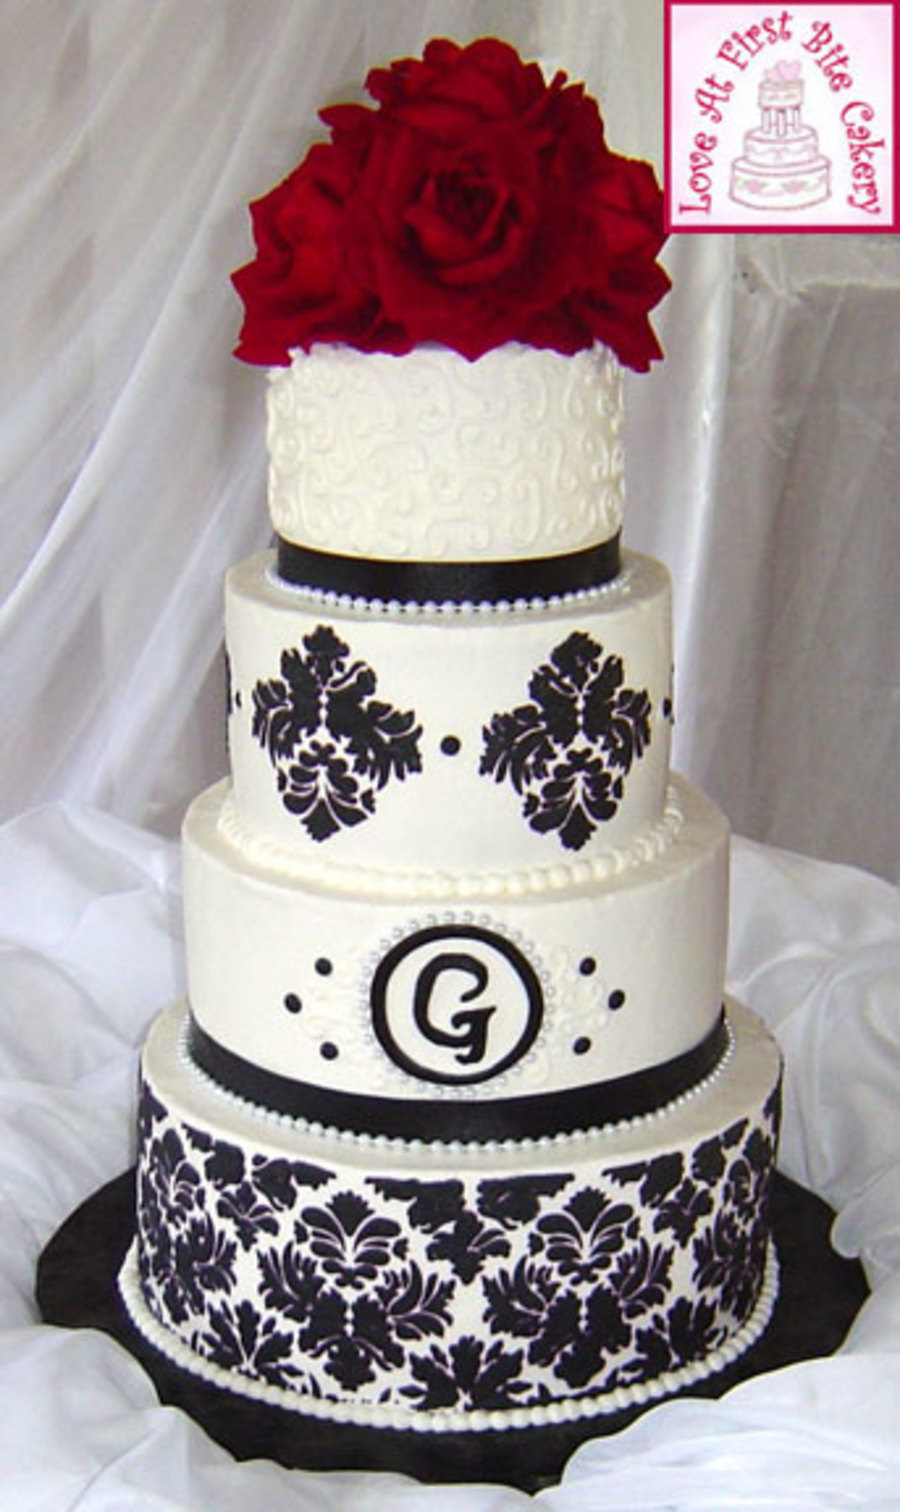 stenciled black white red wedding cake. Black Bedroom Furniture Sets. Home Design Ideas